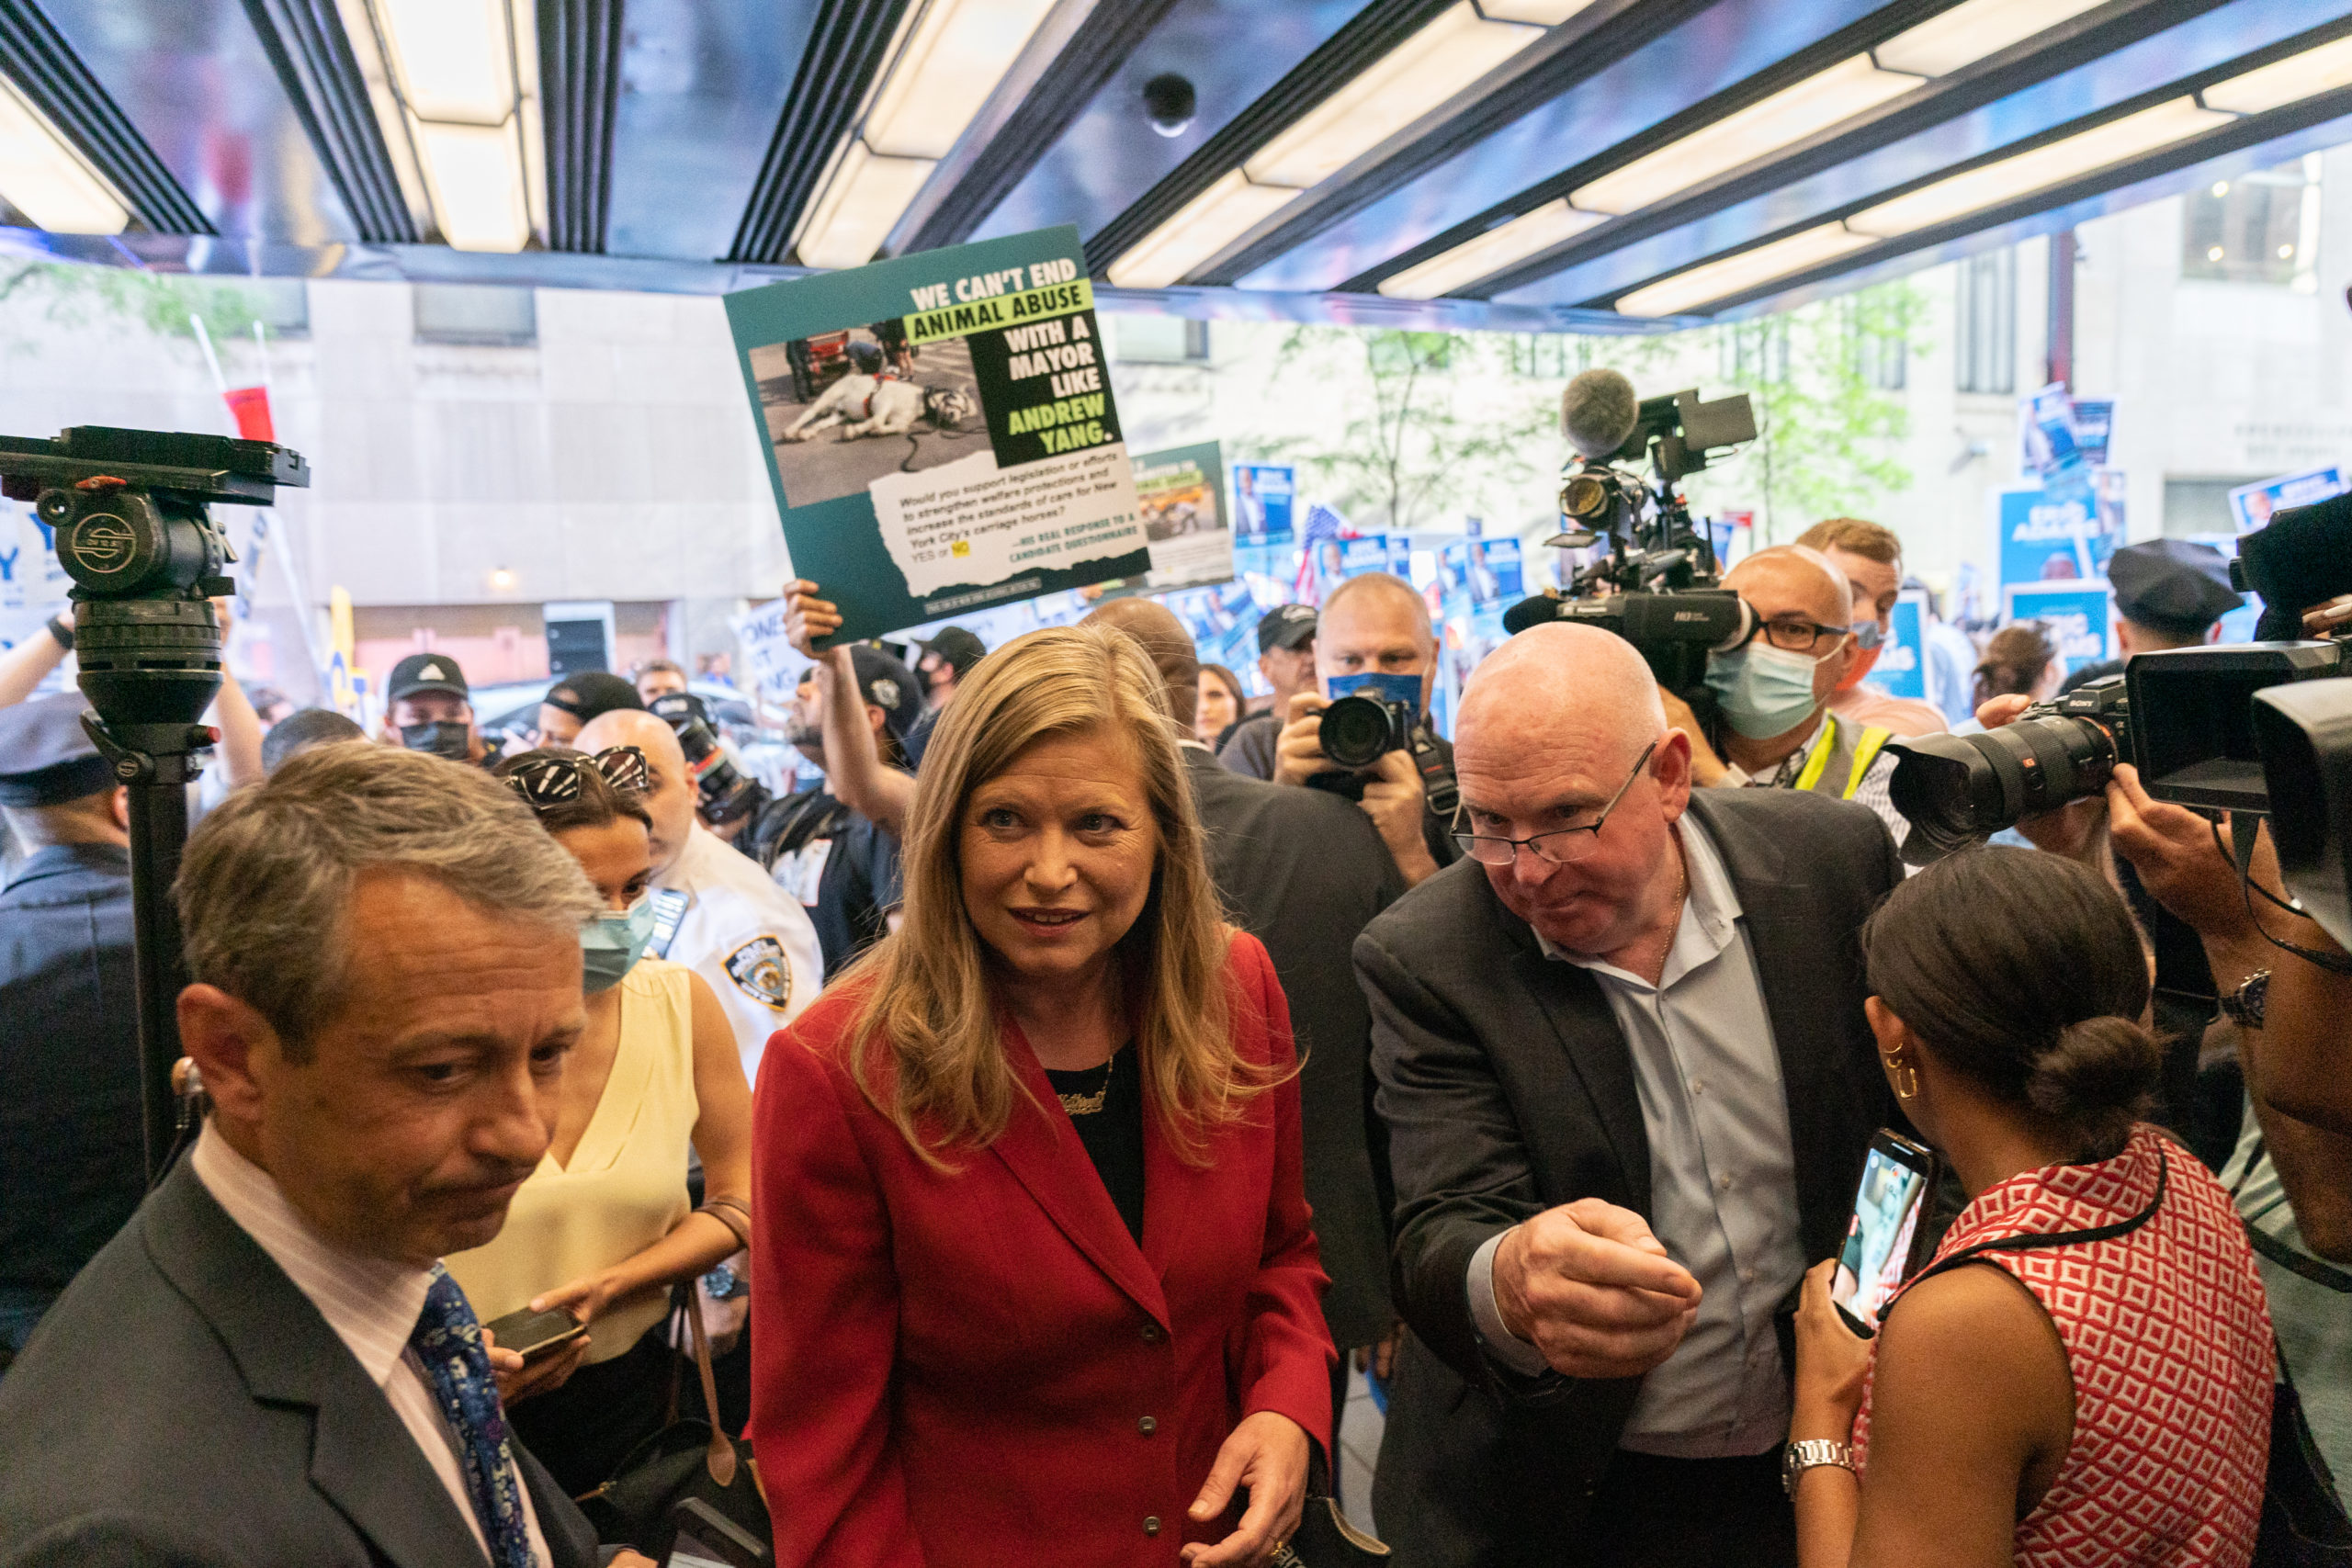 Mayoral candidate Kathryn Garcia arrives for a debate on Wednesday in New York City. (Jeenah Moon/Getty Images)